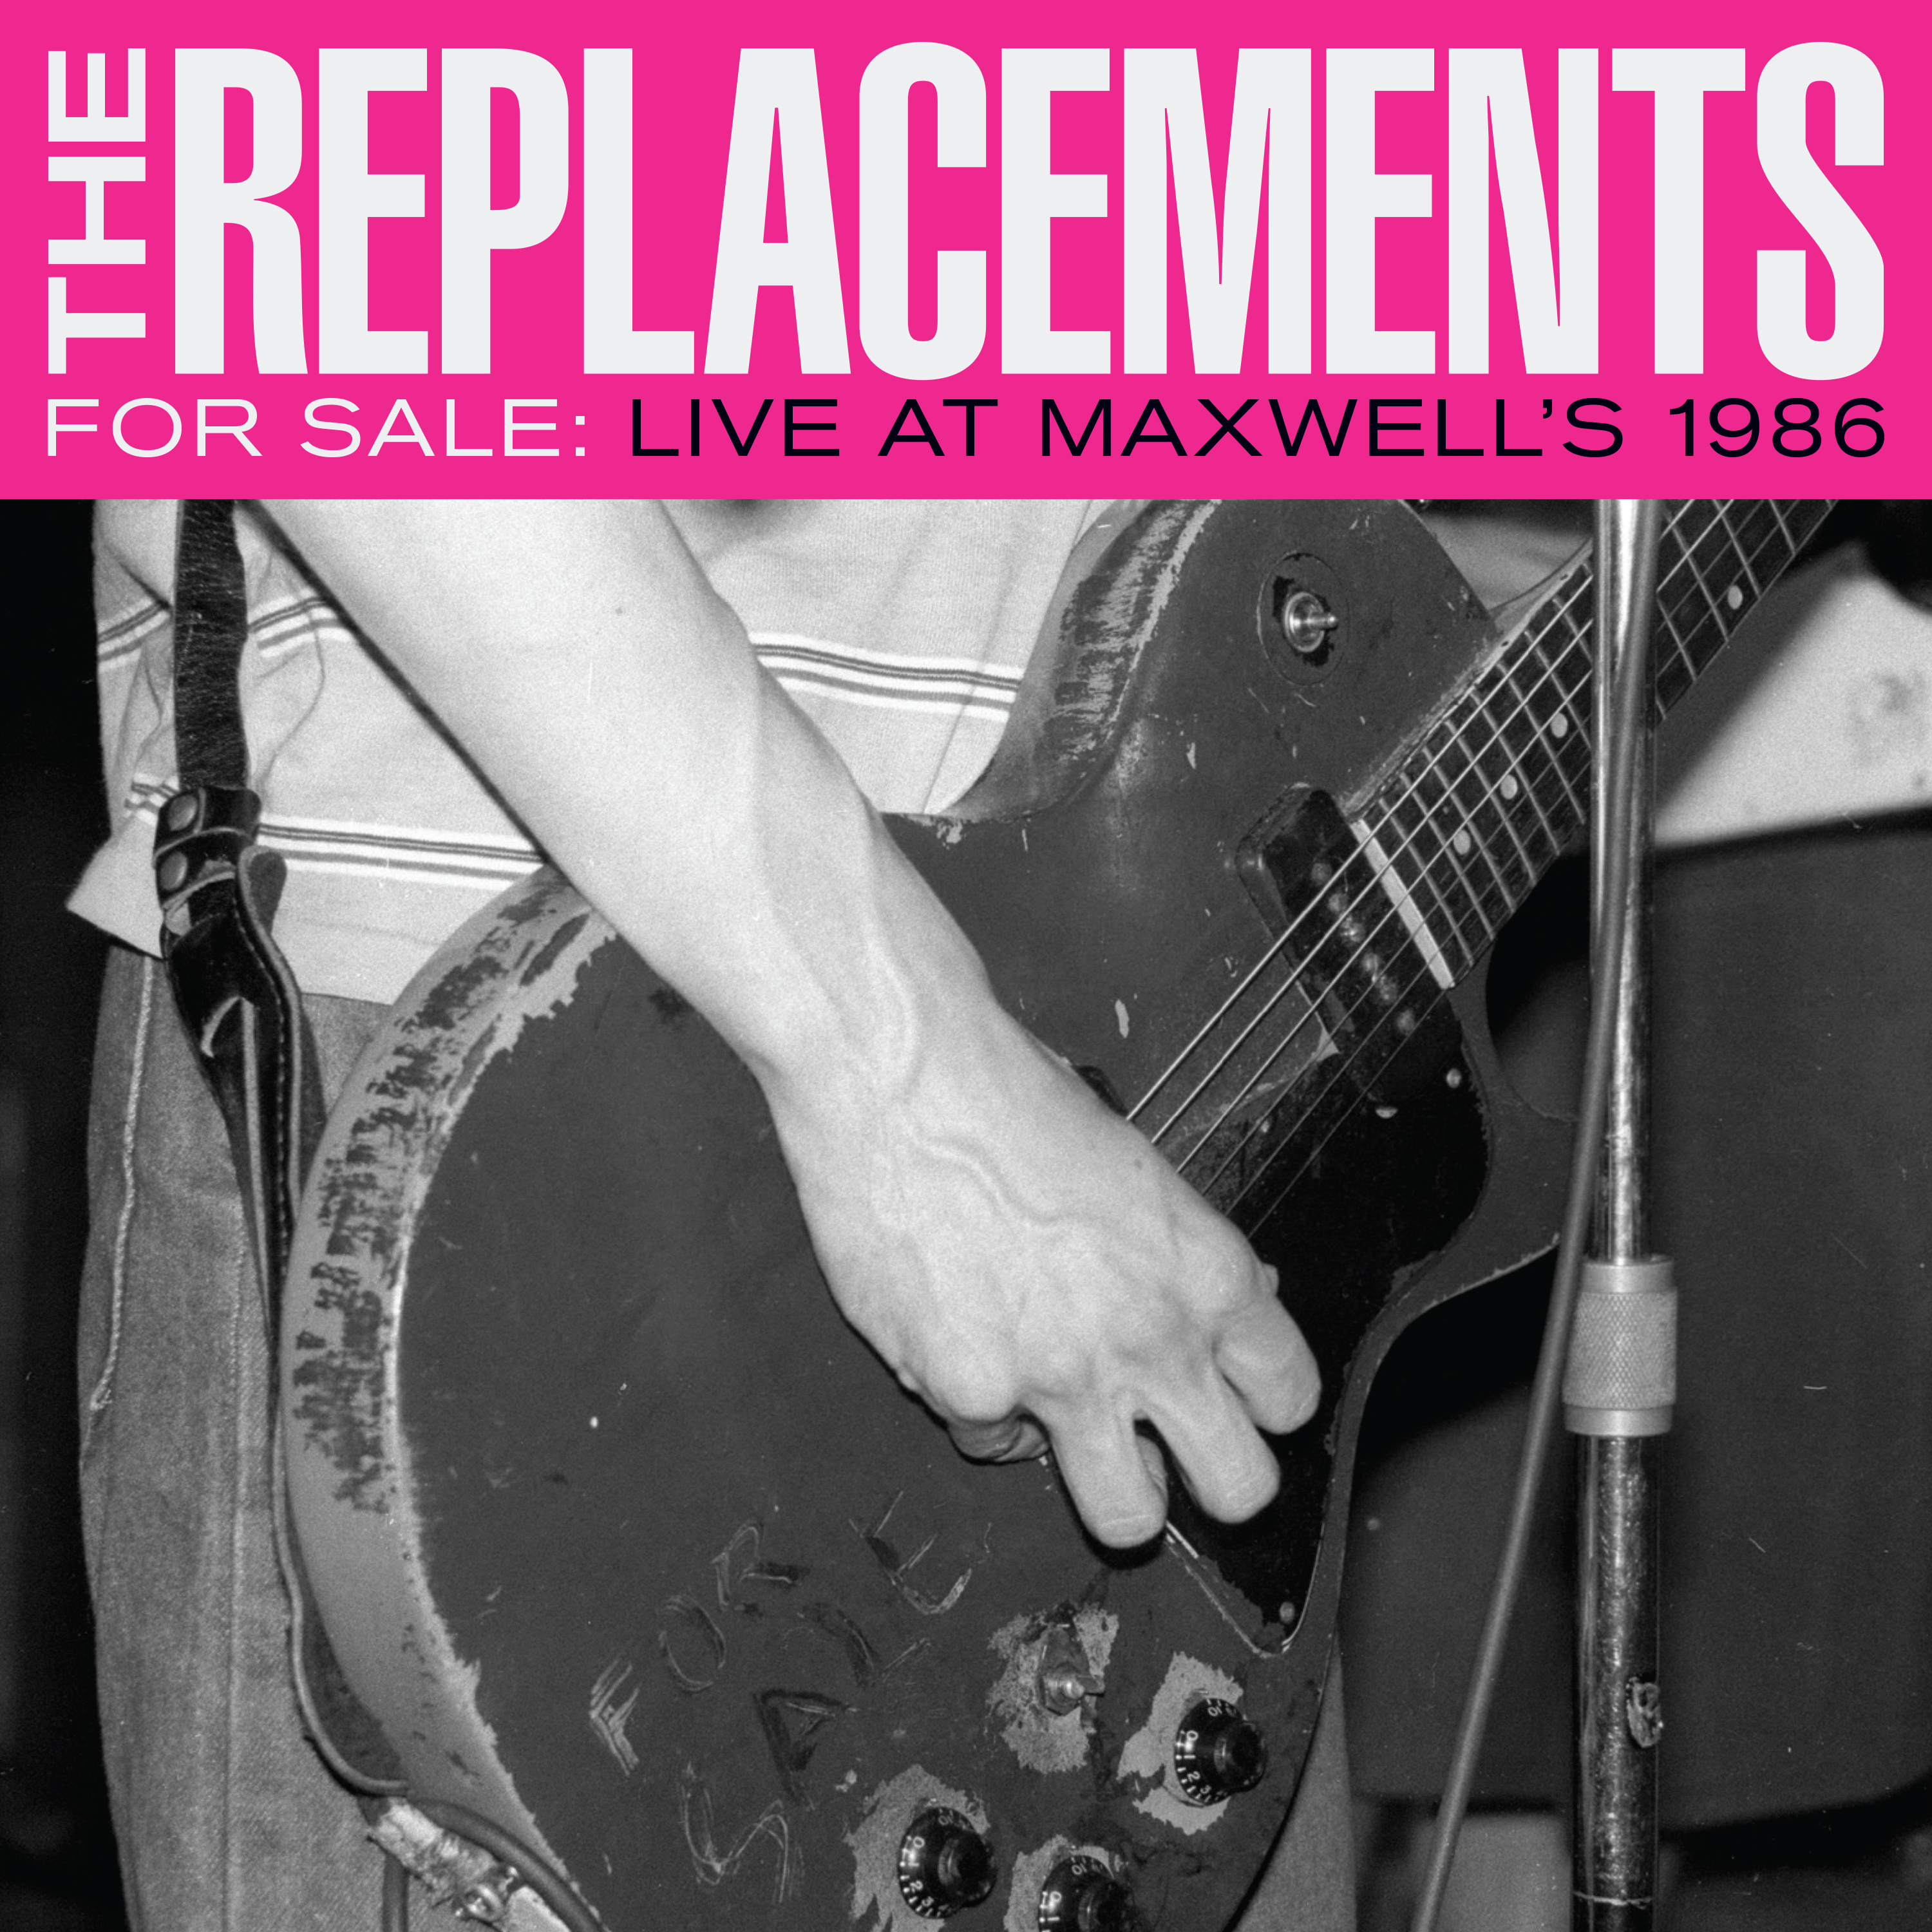 the replacements liveatmaxwells The Replacements share live version of Im in Trouble from For Sale: Live at Maxwells 1986: Stream